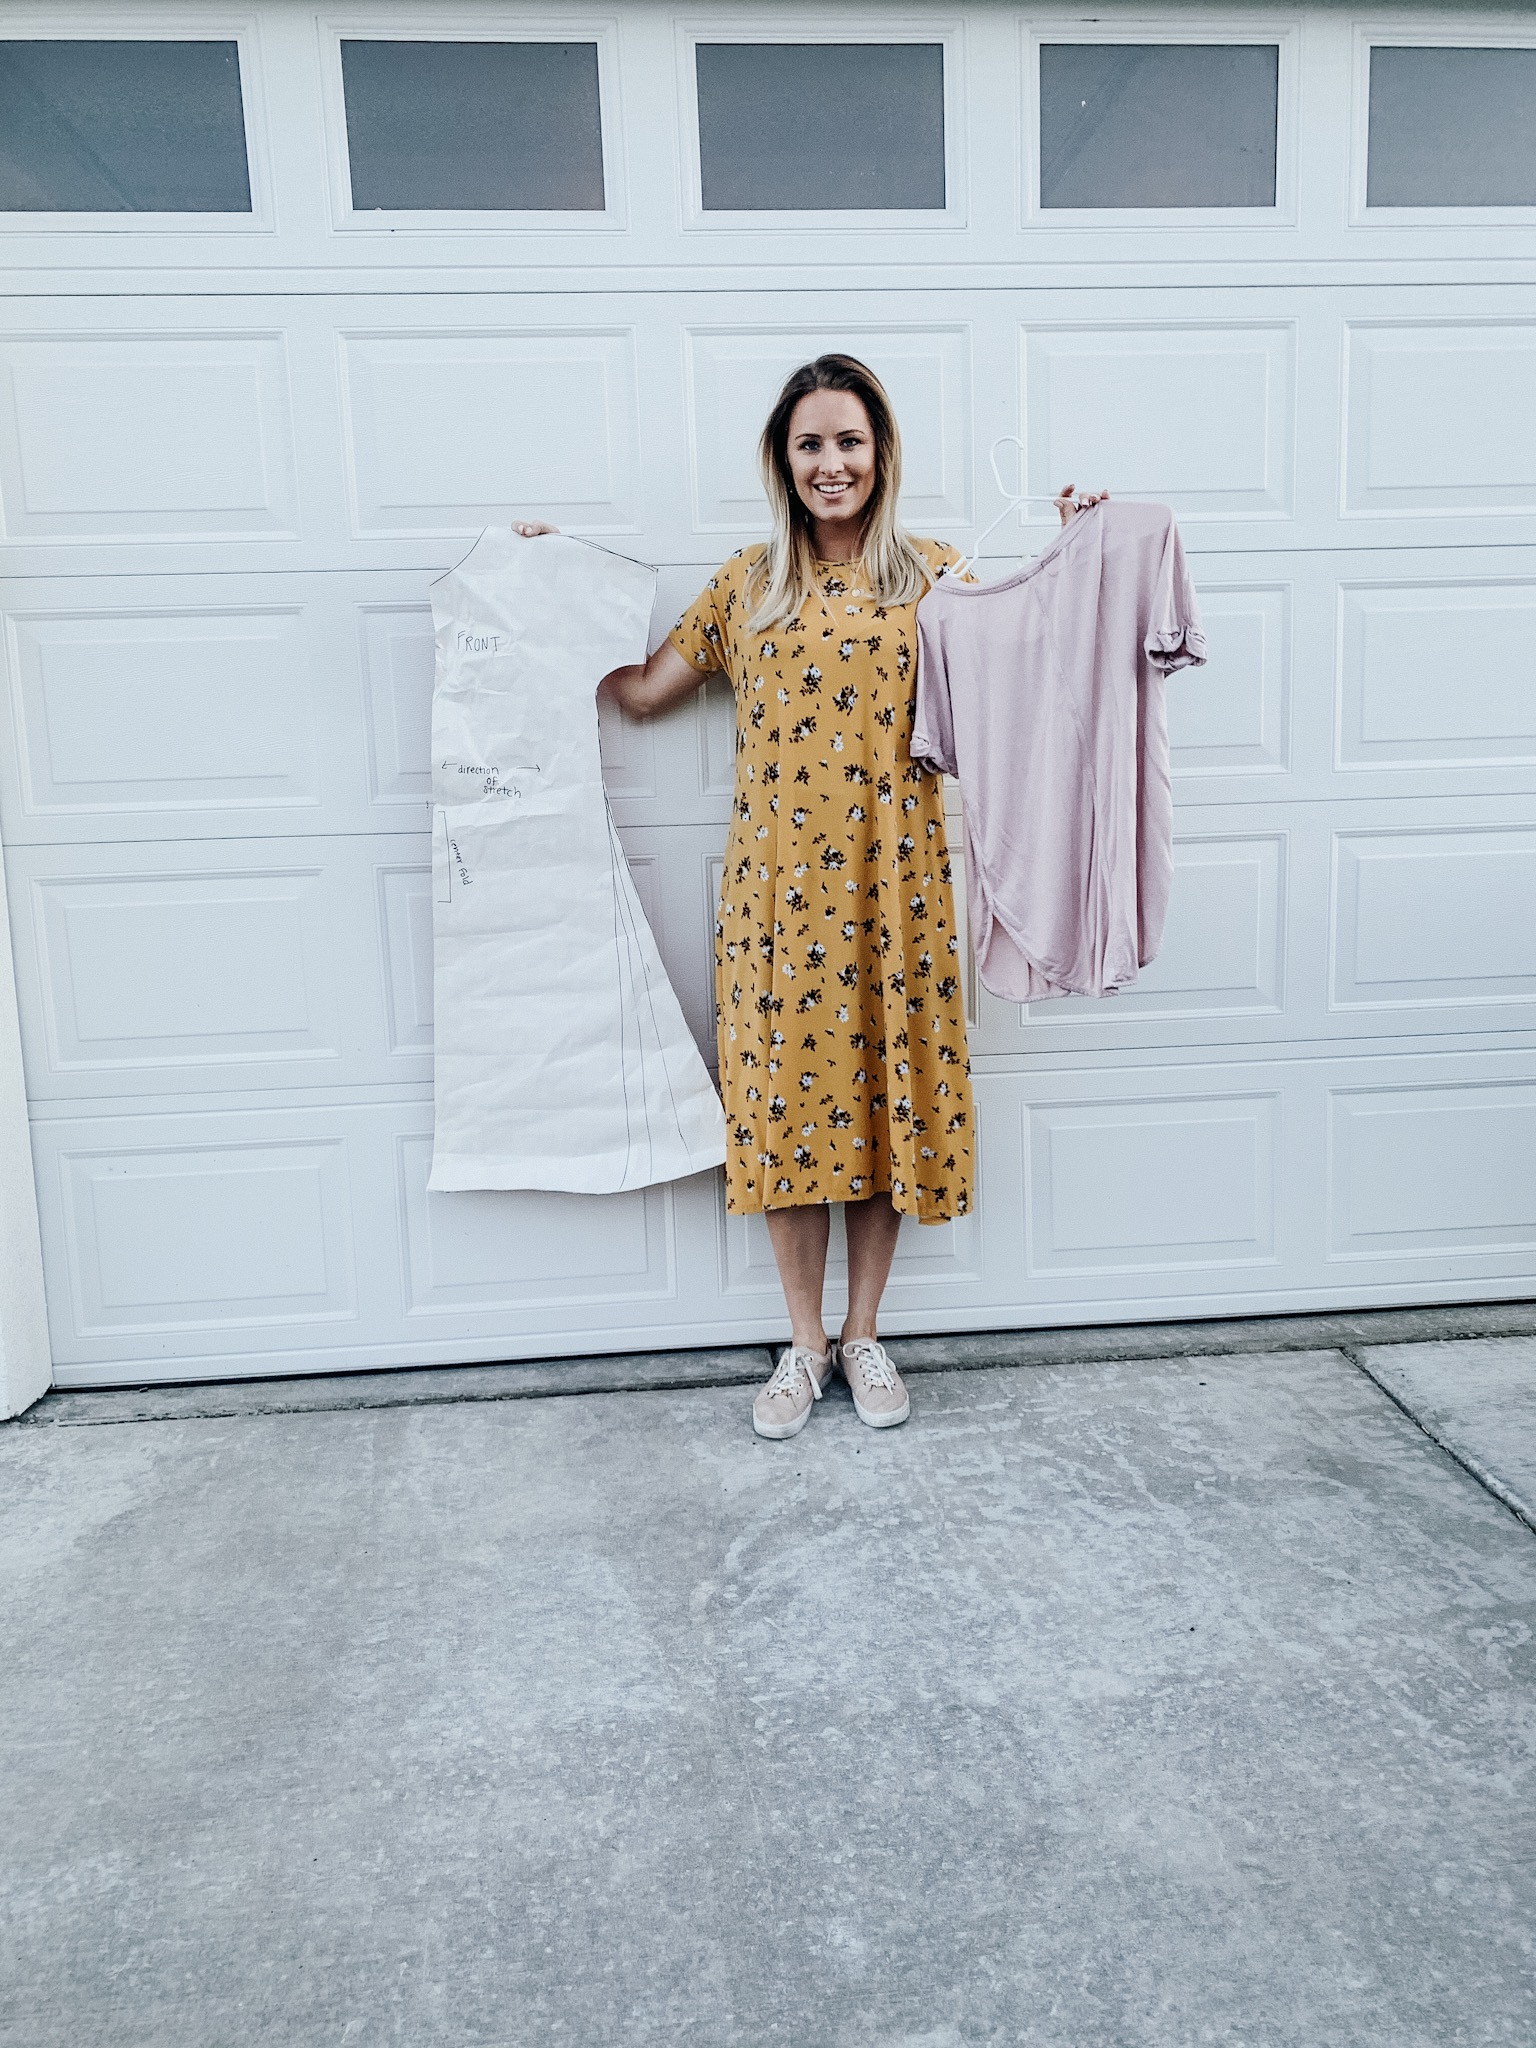 Woman wearing dress, holding dress pattern. | DIY Dress by popular Utah sewing blogger, Kara Metta: image of a woman standing outside and wearing a  yellow floral DIY t-shirt dress.